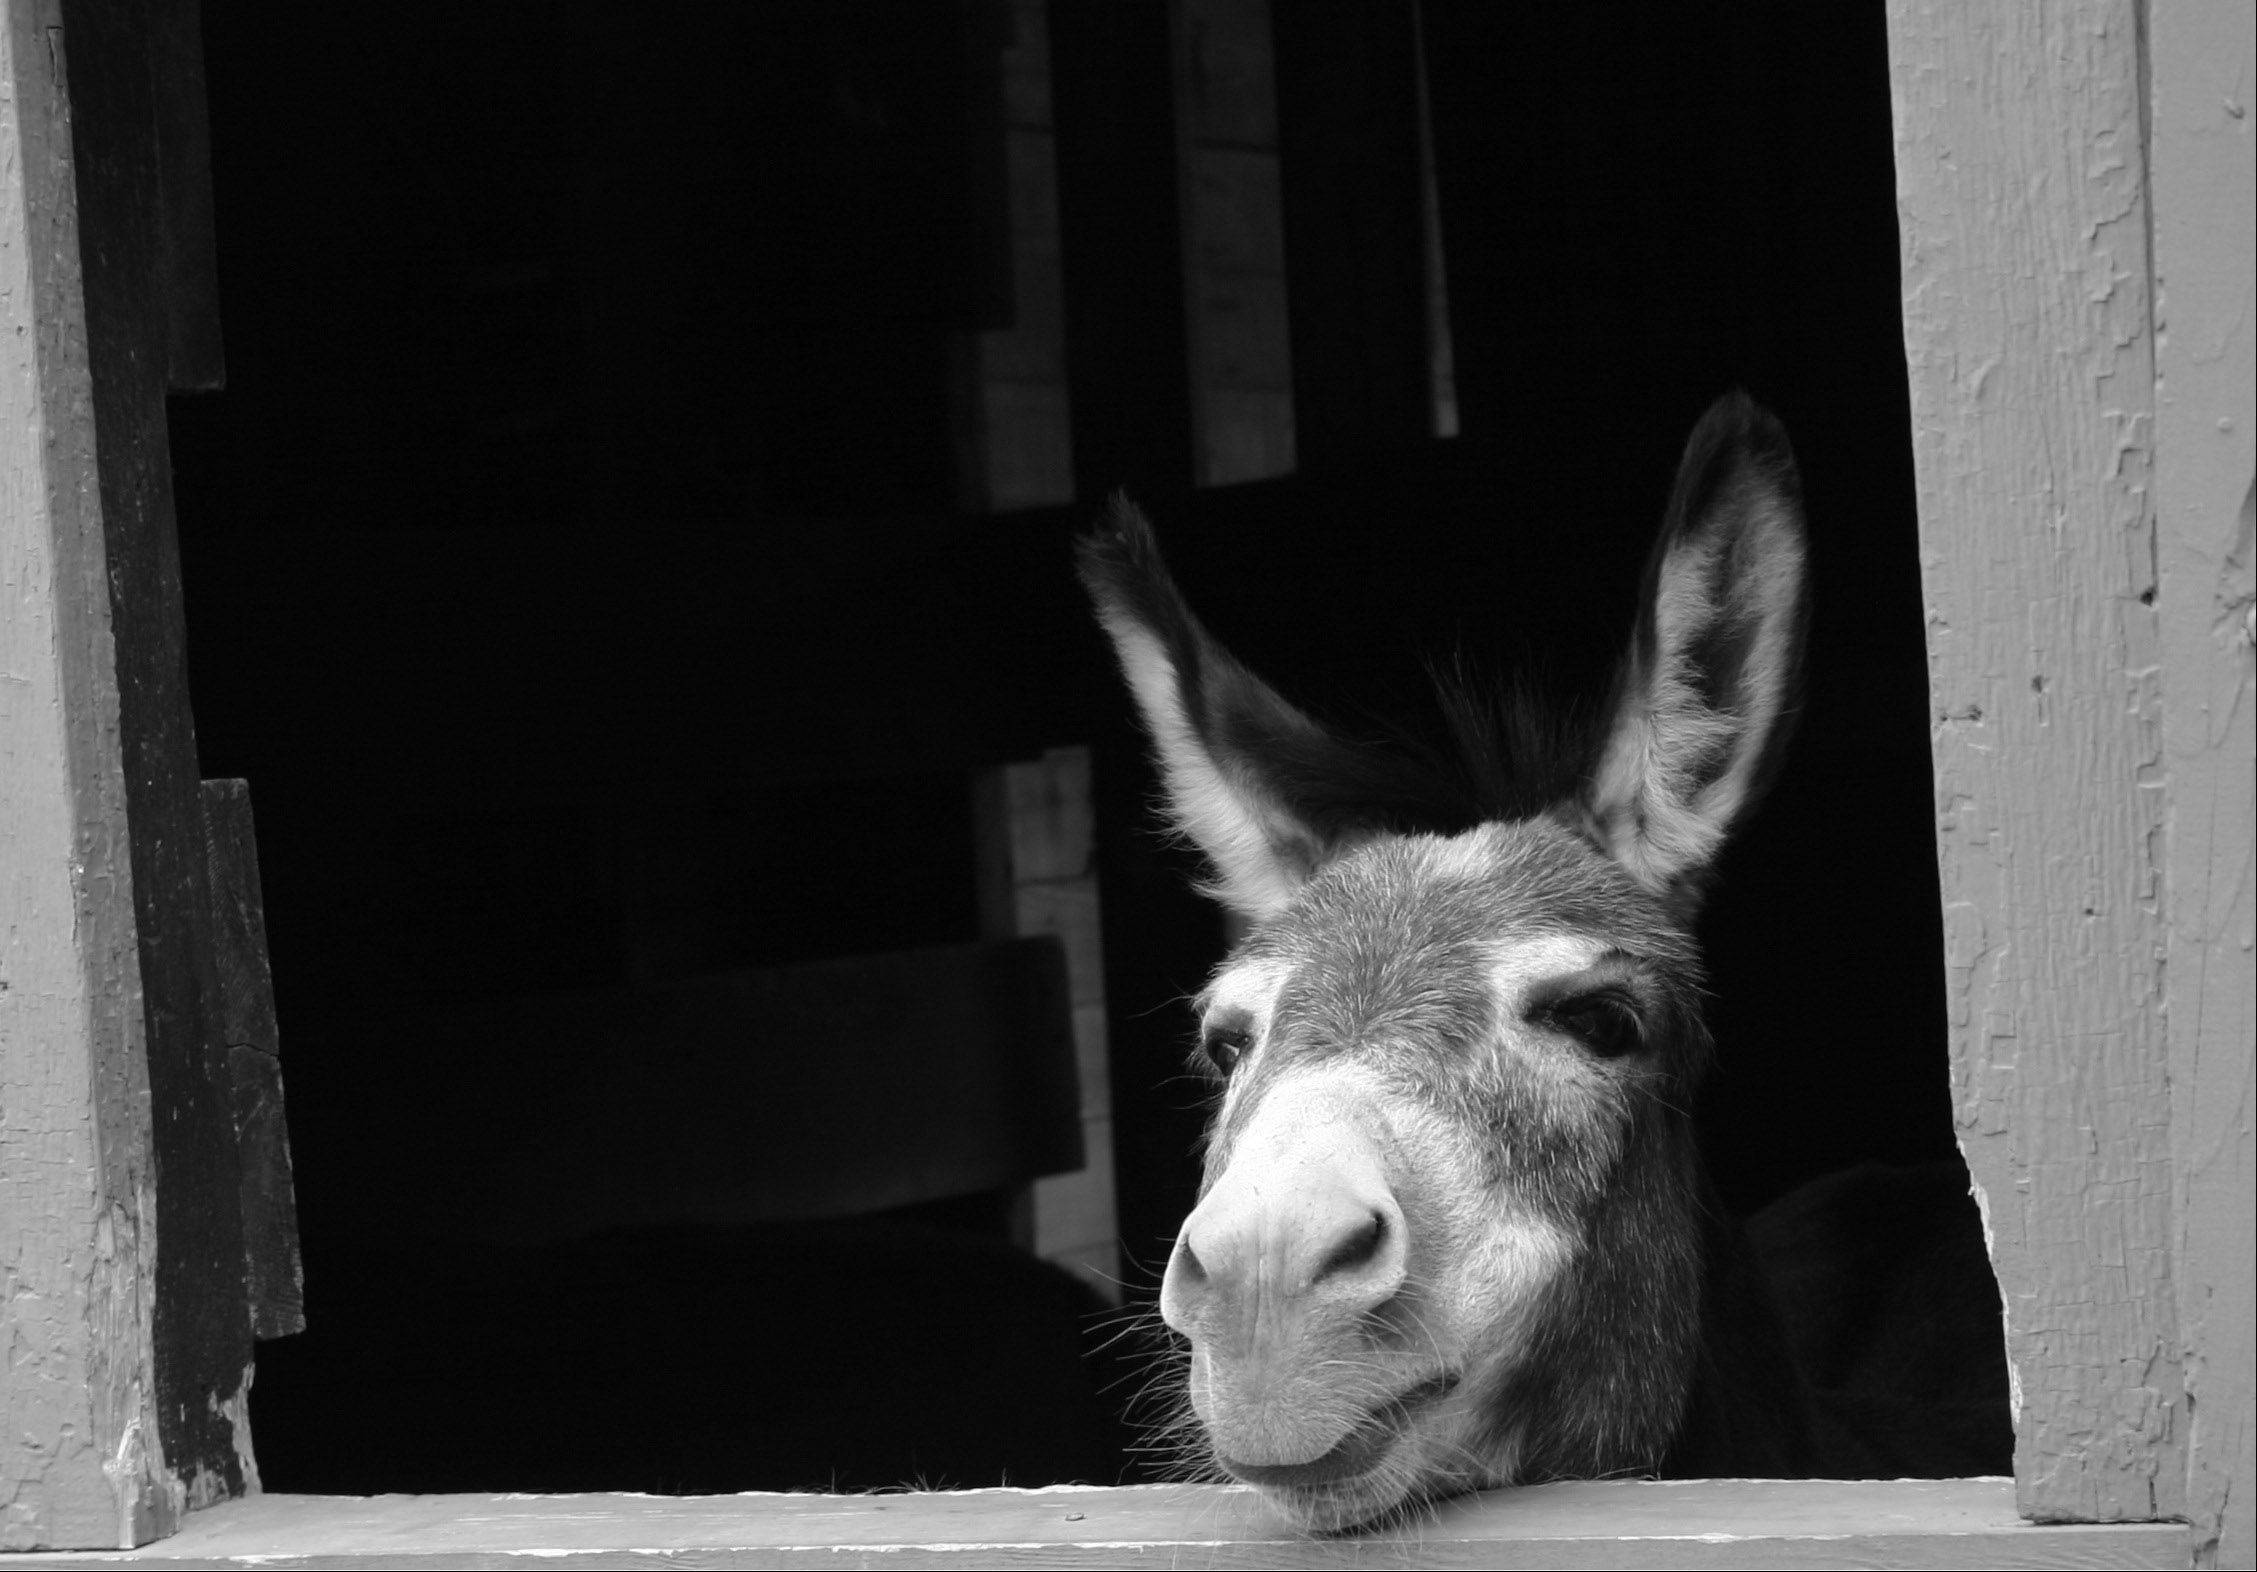 A donkey peers out from its stall at a family reunion in Gurnee.